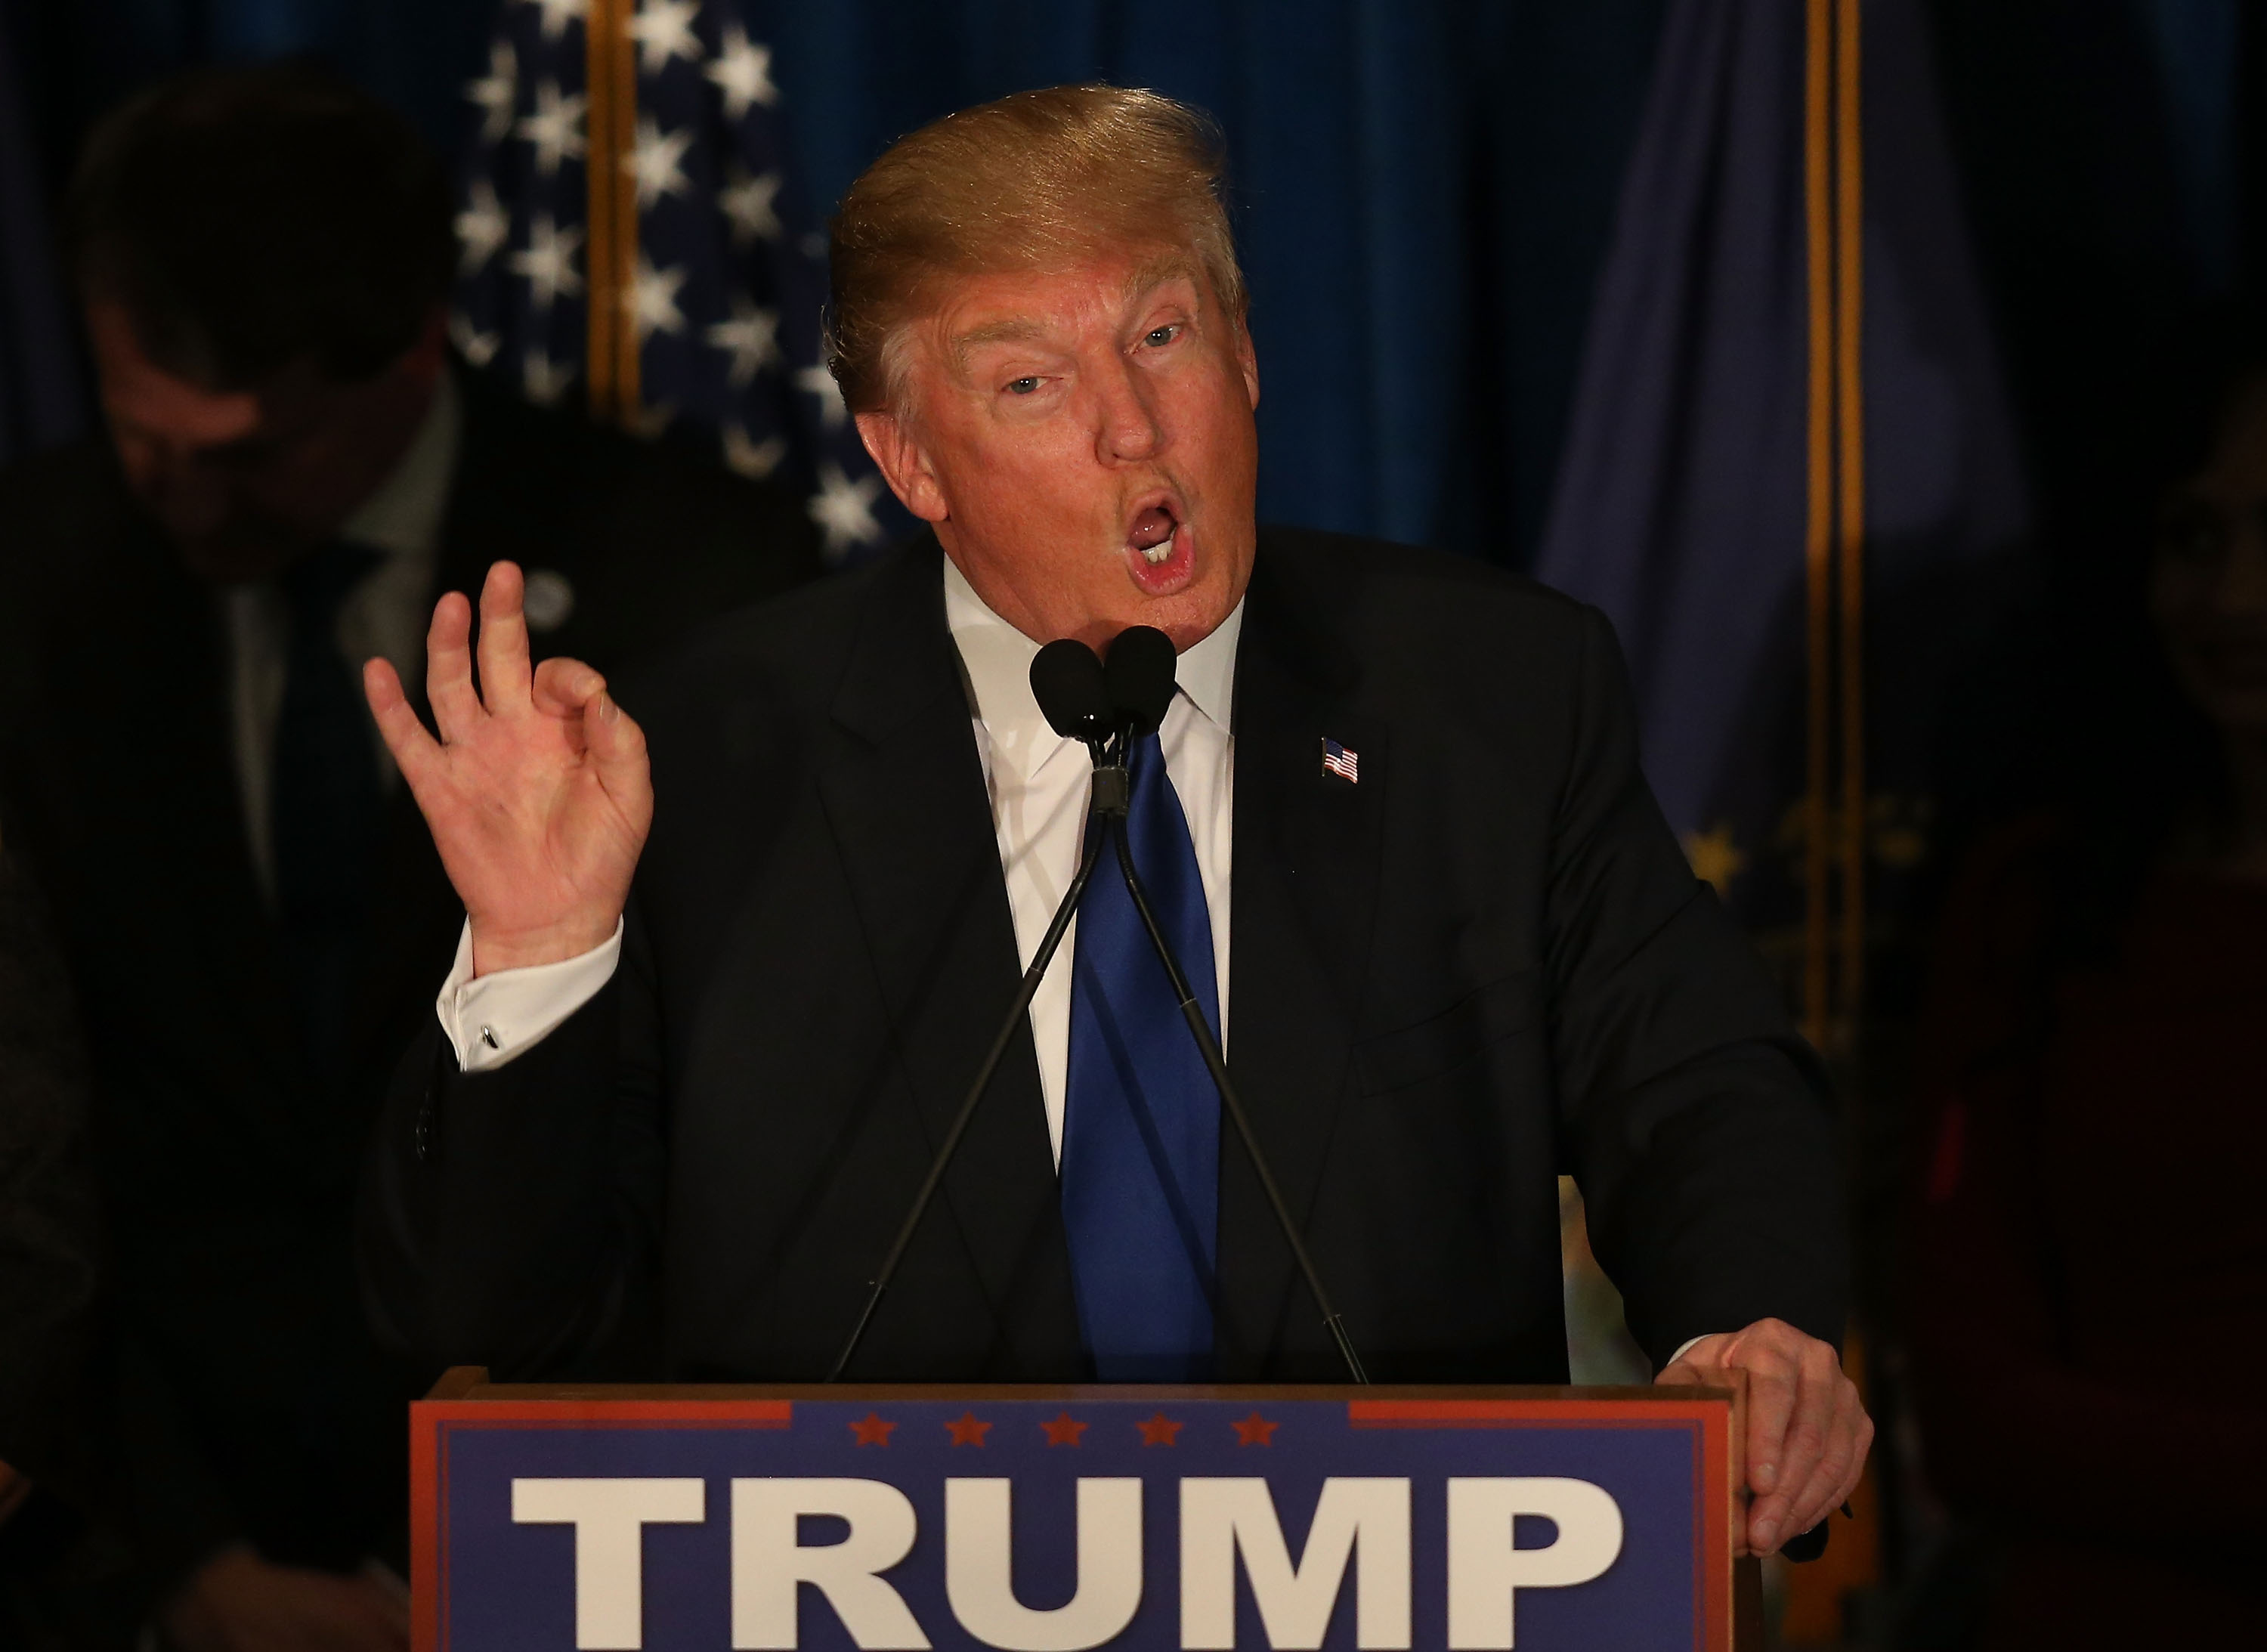 The rise of Donald Trump is a terrifying moment in American politics